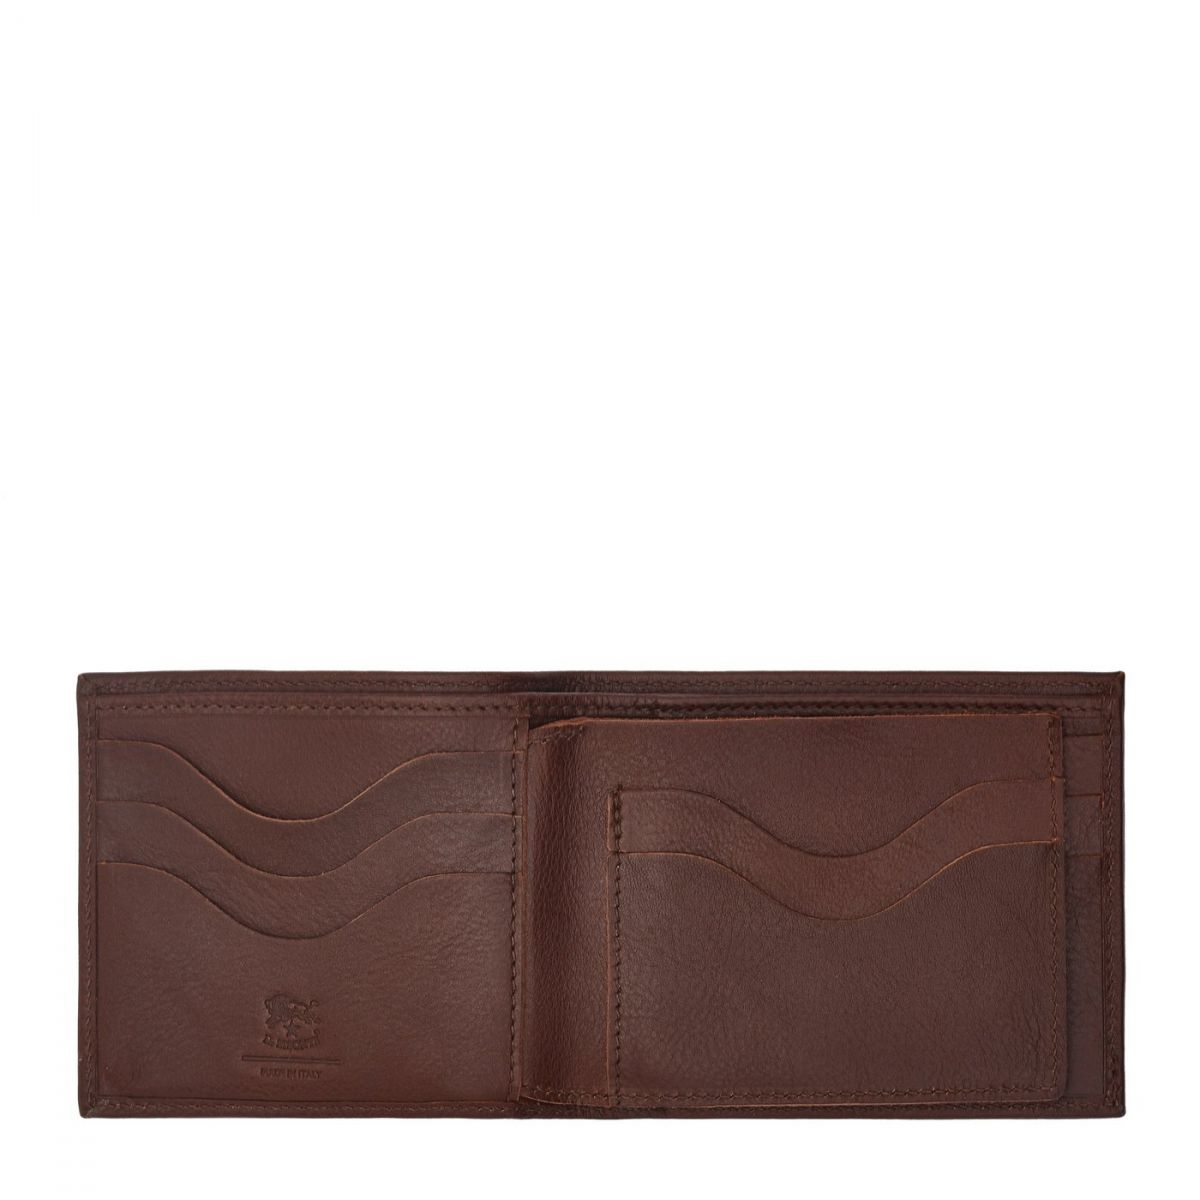 Men's Bi-Fold Wallet  in Cowhide Leather SBW042 color Brown | Details